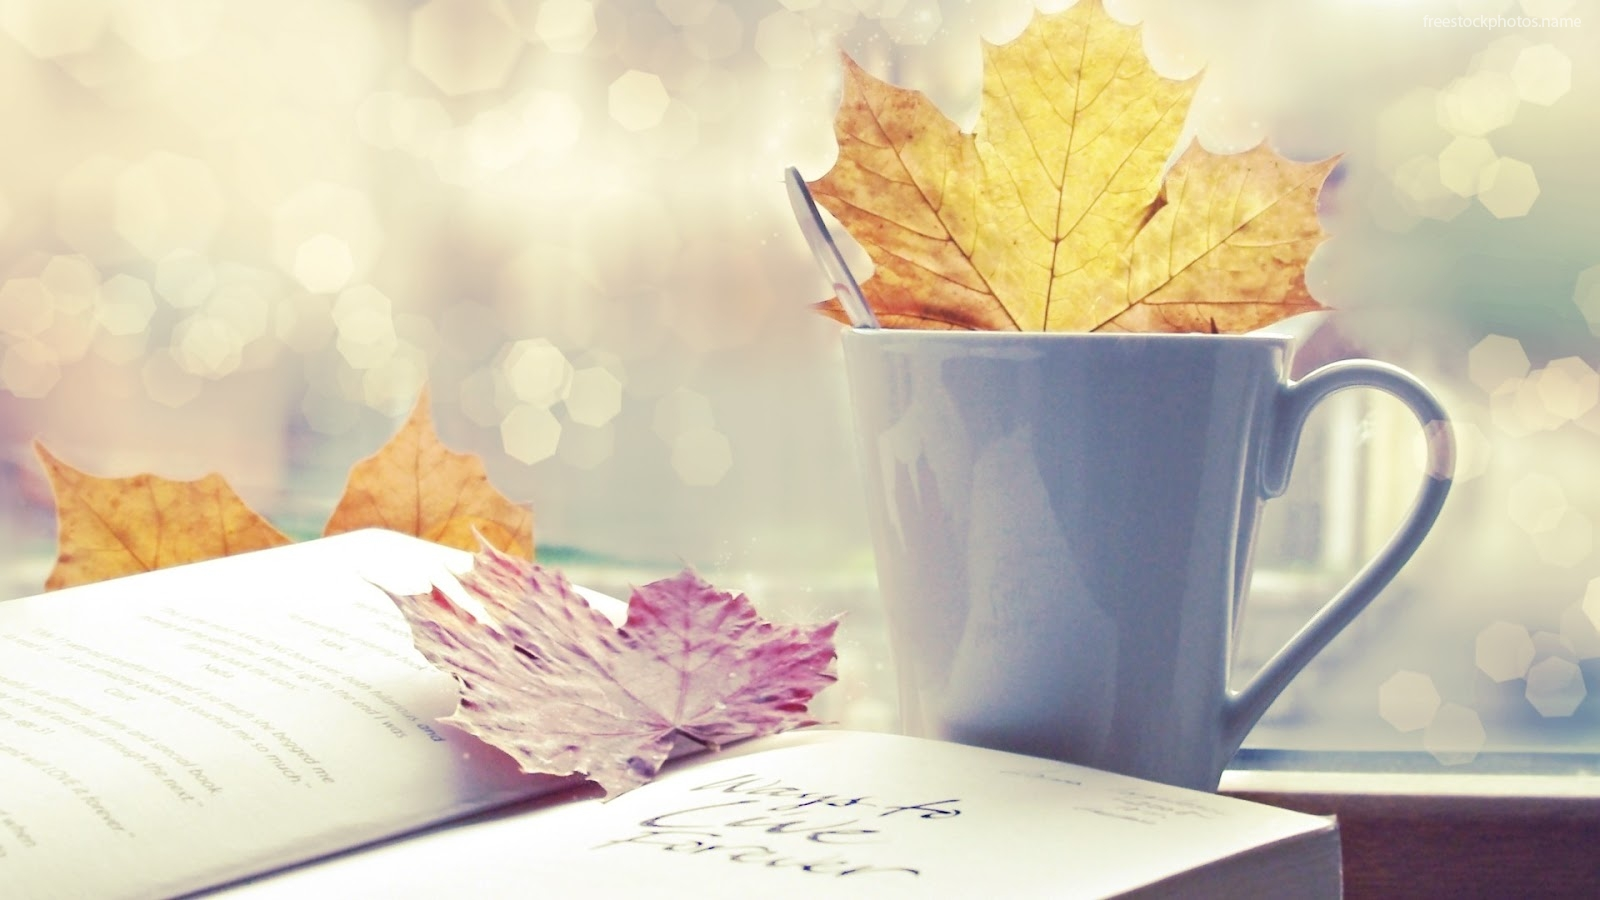 Download Stock Photos of wallpapers of open books images photography 1600x900